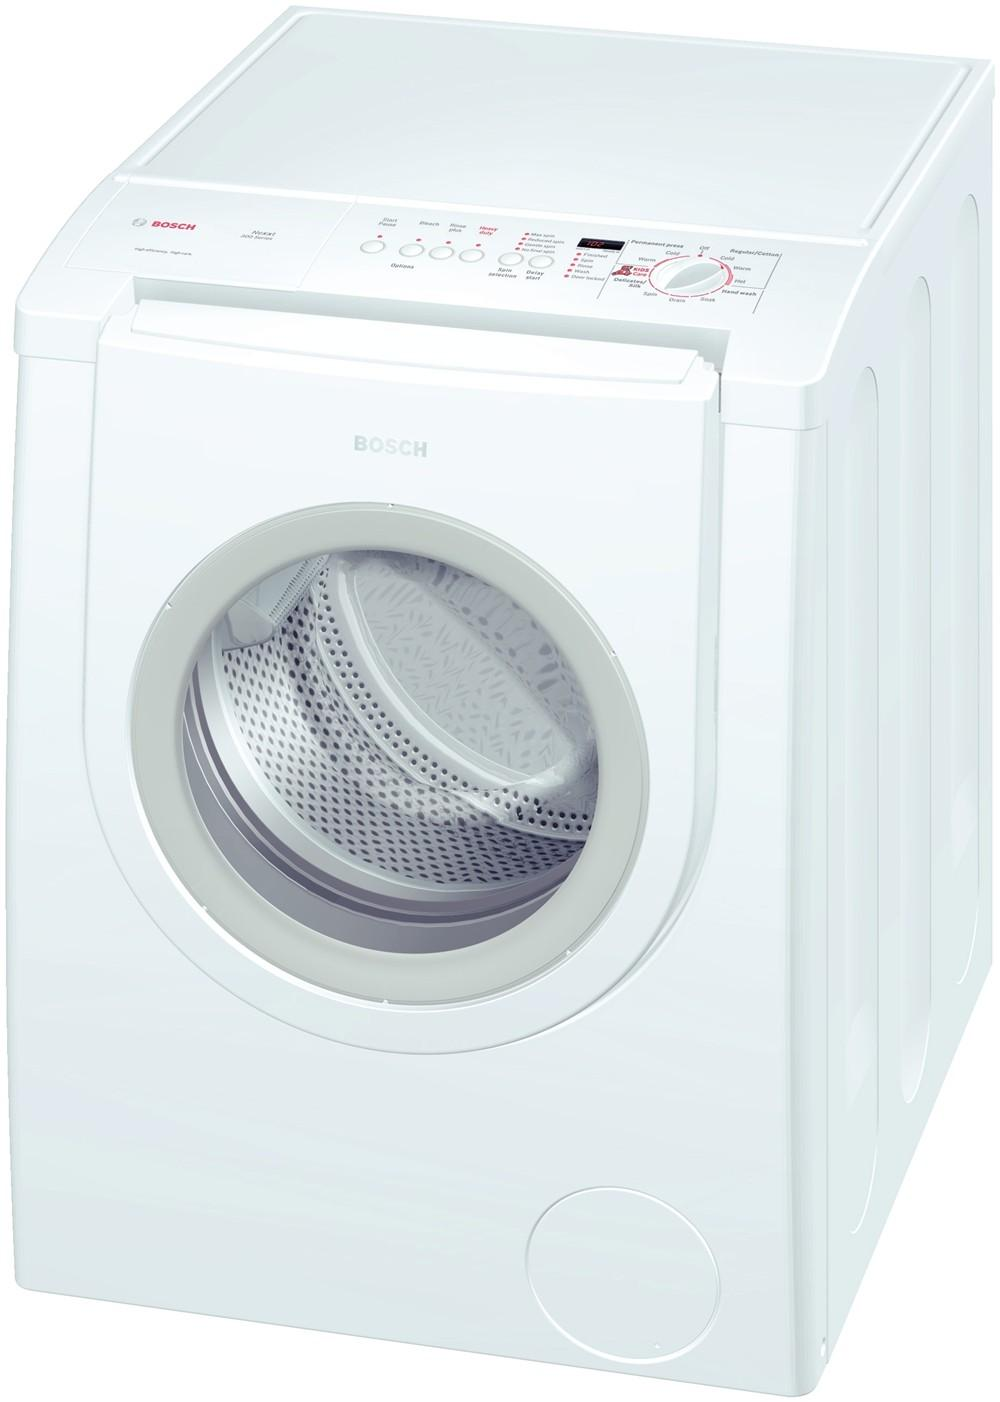 Bosch Wfmc2201uc 27 Quot Front Load Washer With 4 0 Cu Ft